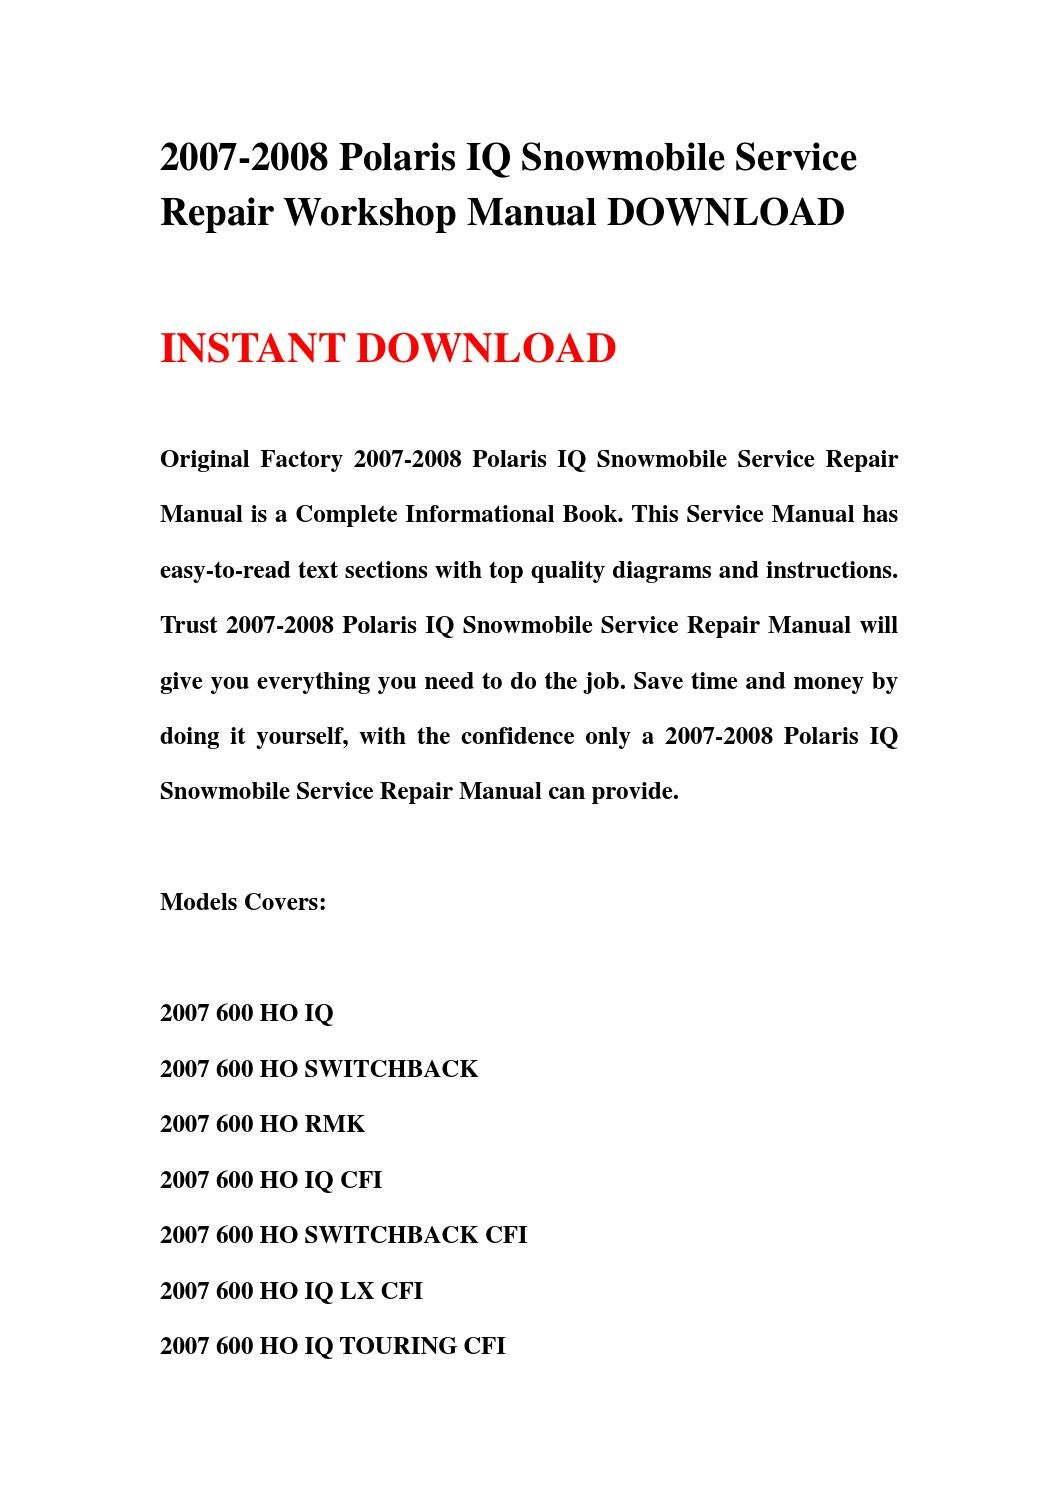 2007 2008 Polaris Iq Snowmobile Service Repair Workshop Manual Download By Kksjefnh Uhshenf